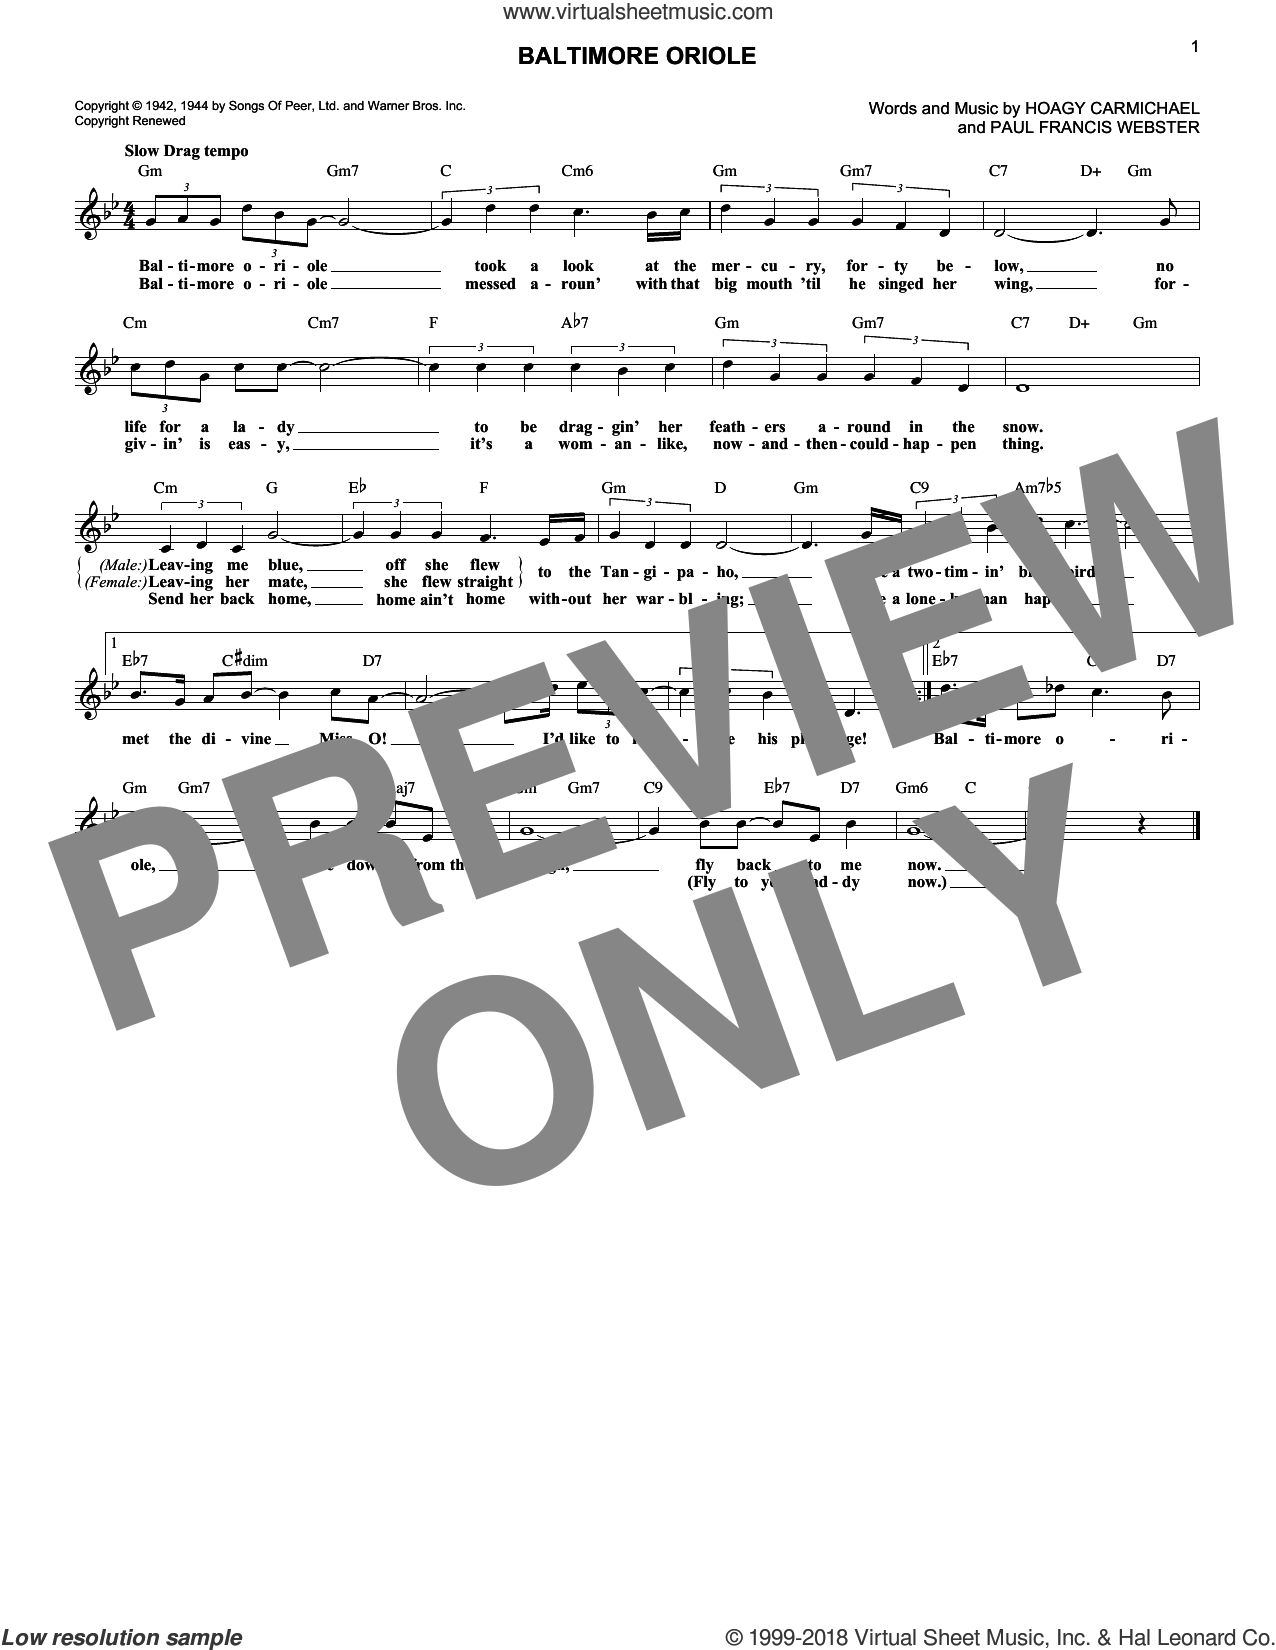 Baltimore Oriole sheet music for voice and other instruments (fake book) by Hoagy Carmichael and Paul Francis Webster, intermediate skill level